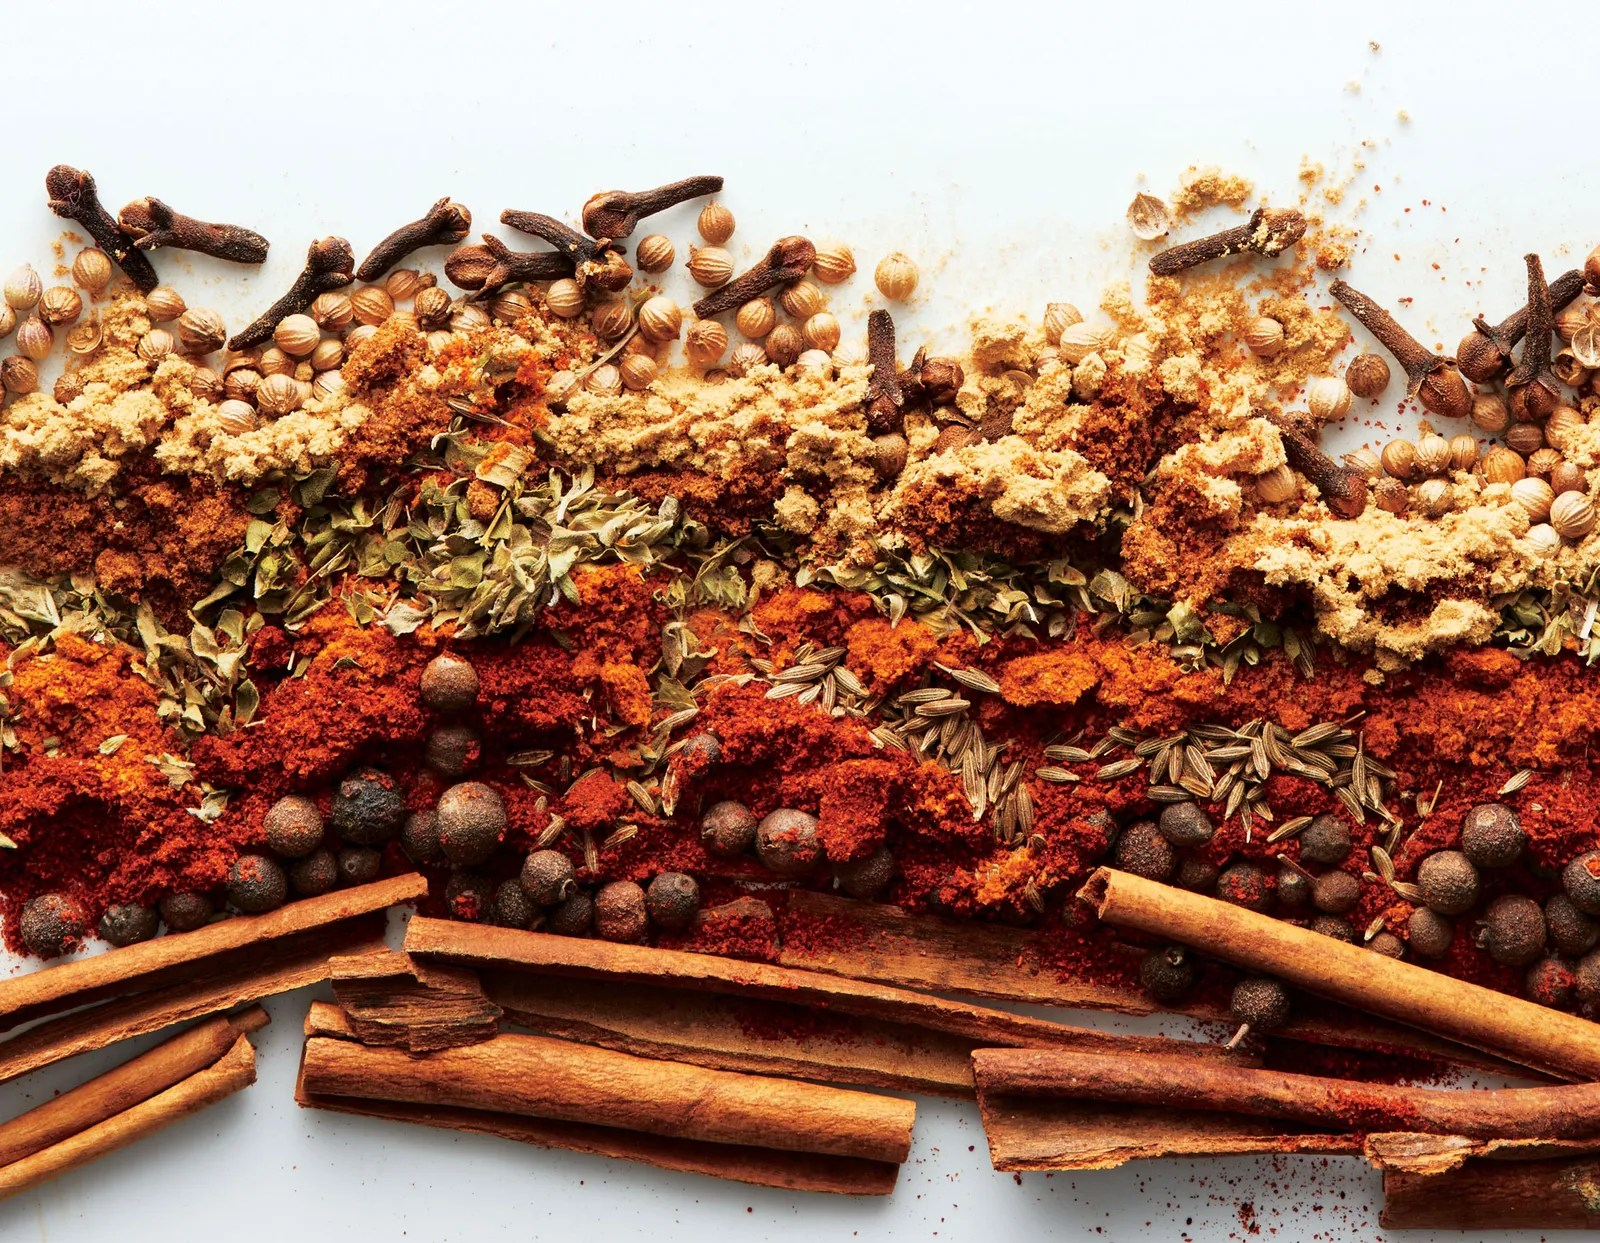 How To Make A Homemade Spice Blend